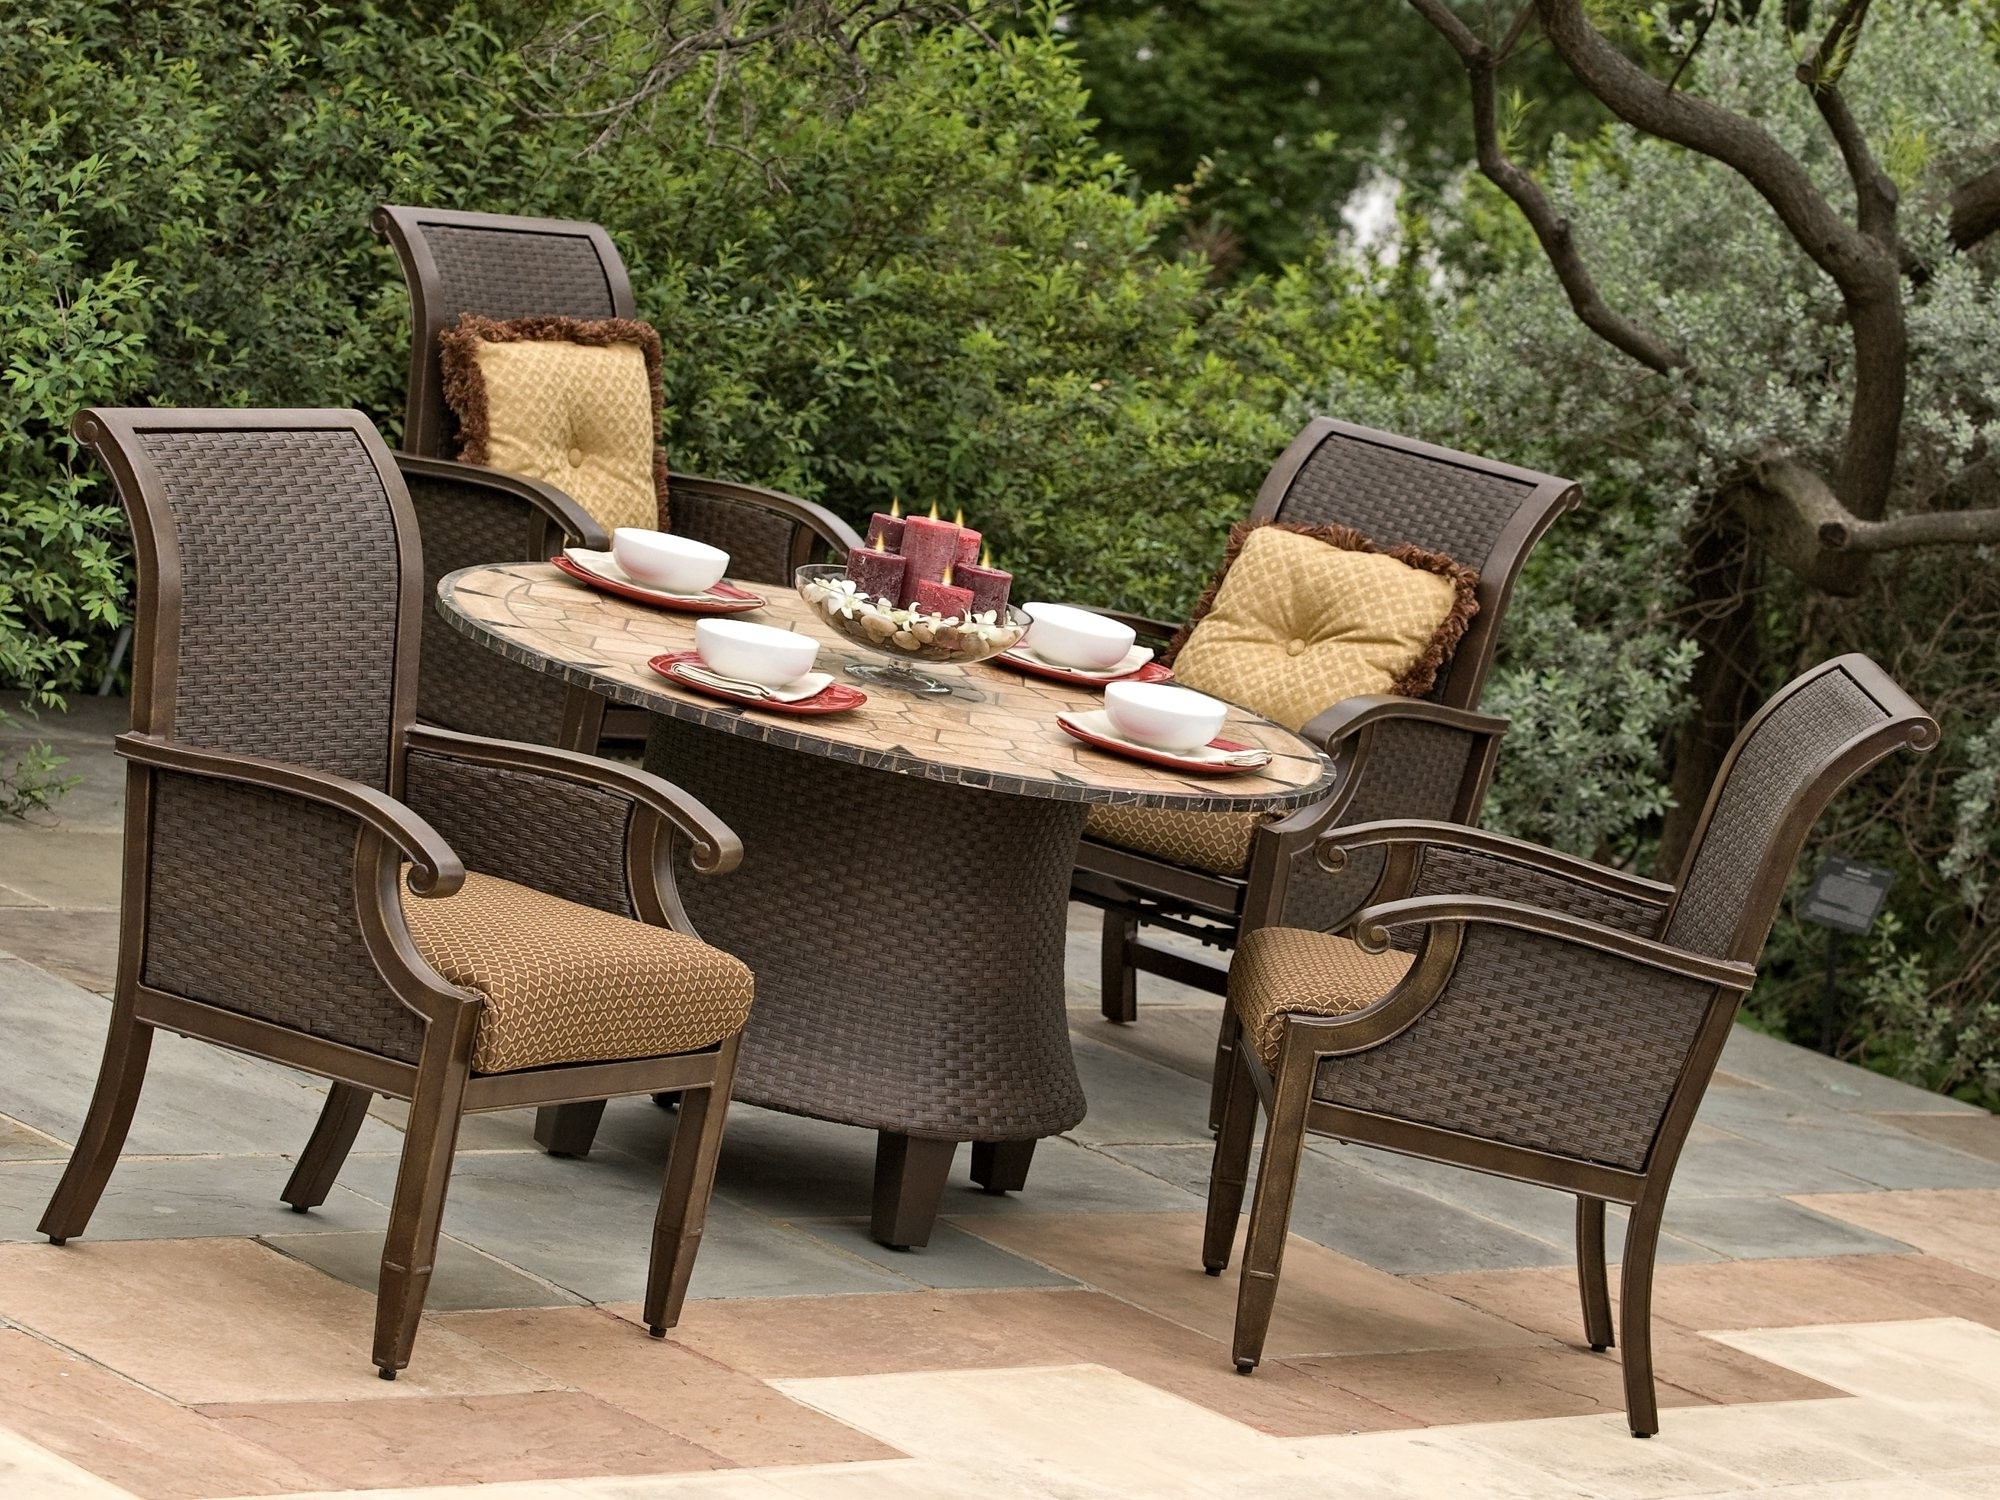 2017 Patio Conversation Sets With Dining Table Inside Marvelous Outdoor Patio Furniture 27 Kor Relaxed Location Dining  (View 6 of 15)